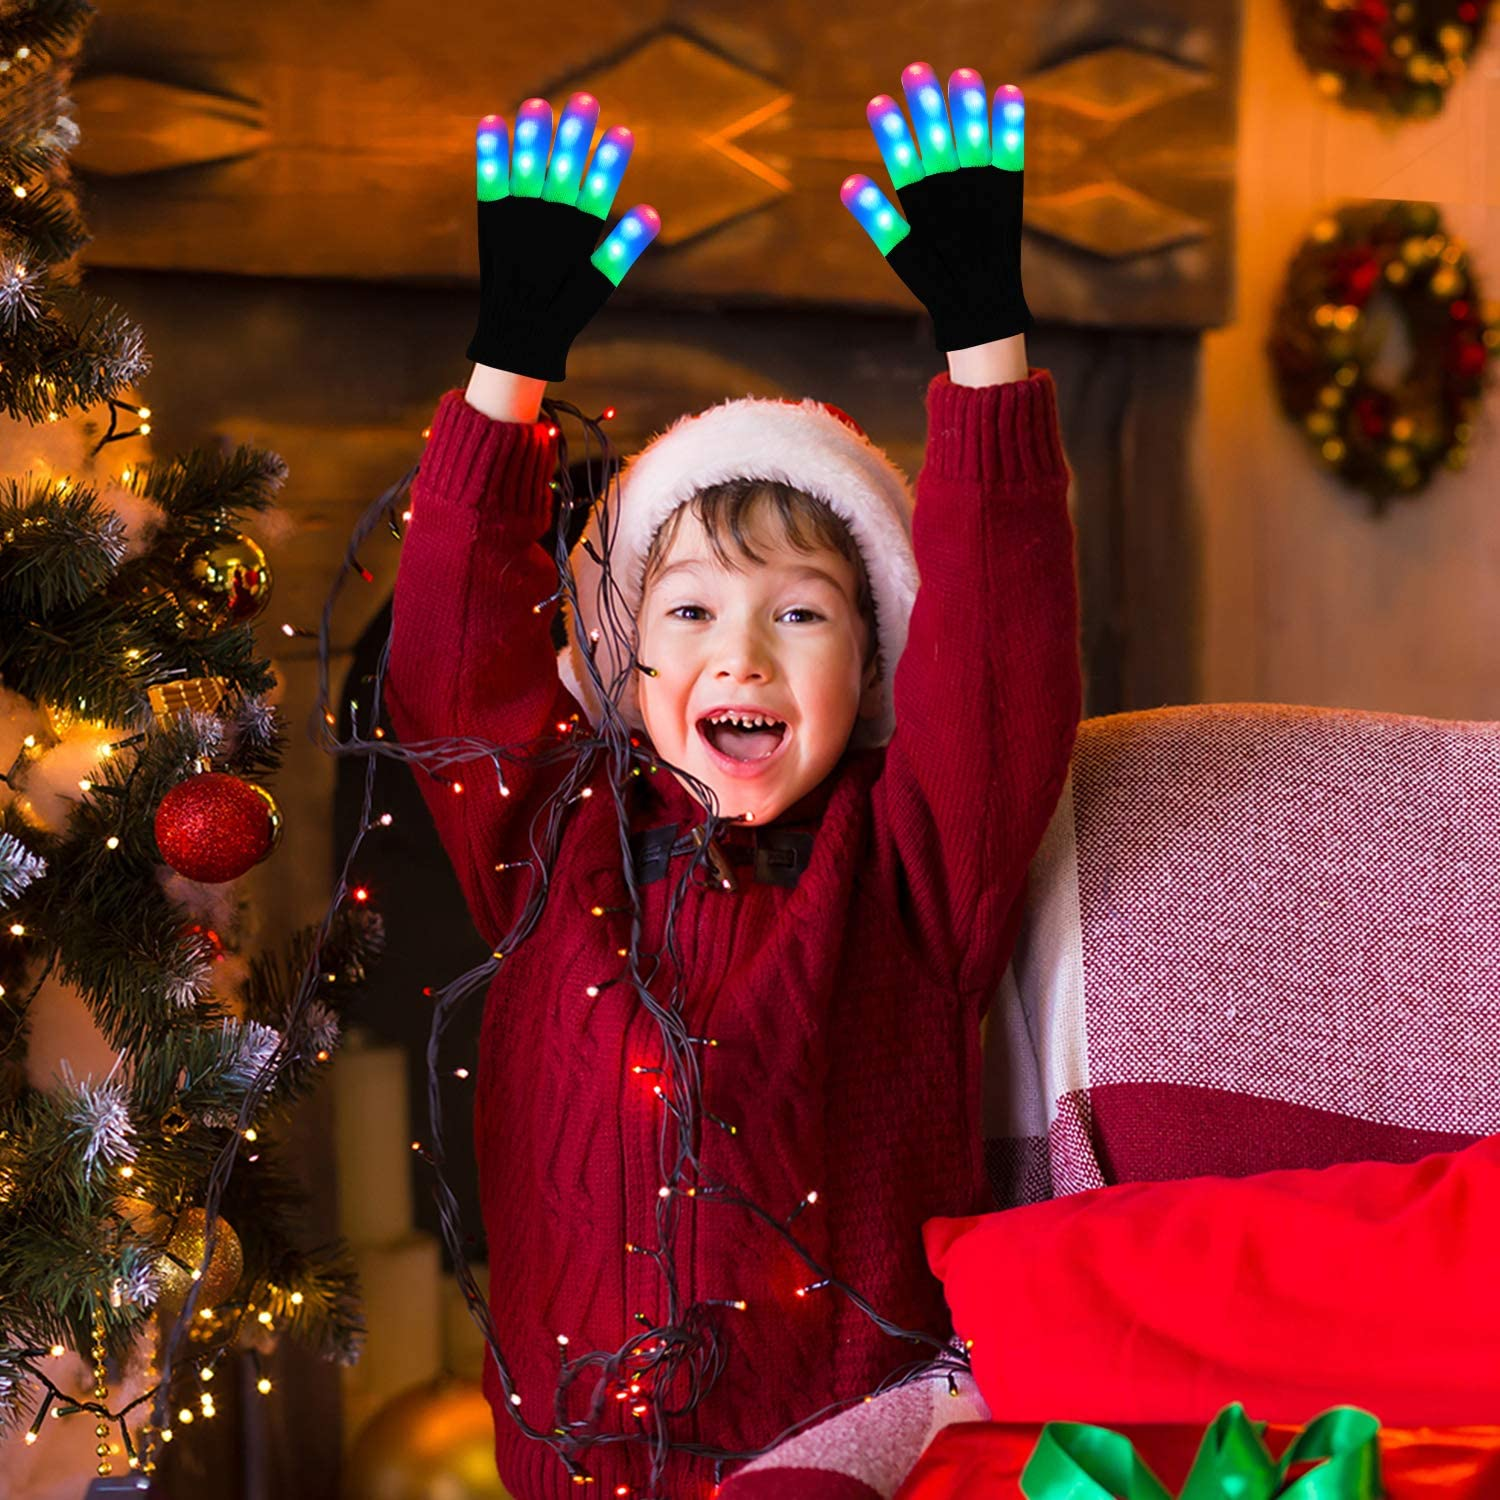 kid-1pair SIPU LED Gloves Light Up Gloves Finger Lights 3 Colors 6 Modes Flashing LED Warm Gloves Colorful Flashing Gloves Kids Toys for Christmas Halloween Party Favors,Gifts